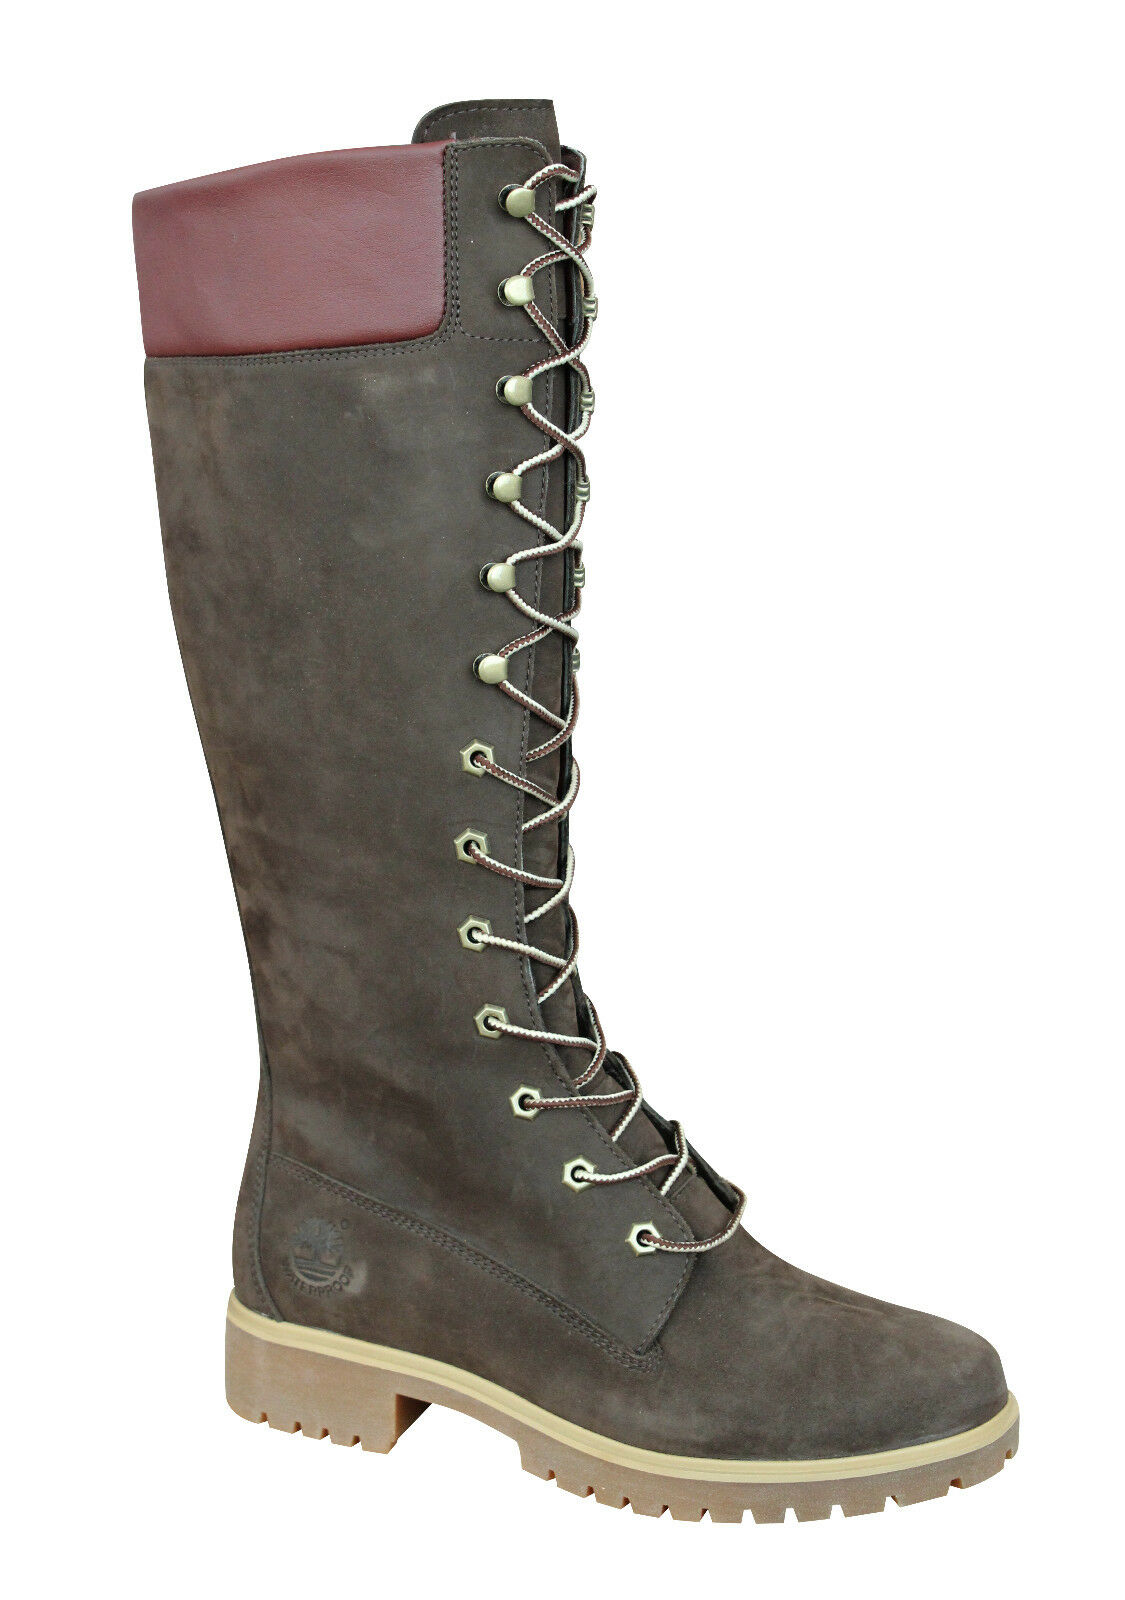 Details zu Timberland Womens Leather 14 inch Knee High Lace Up Boots Brown 3753R B8C